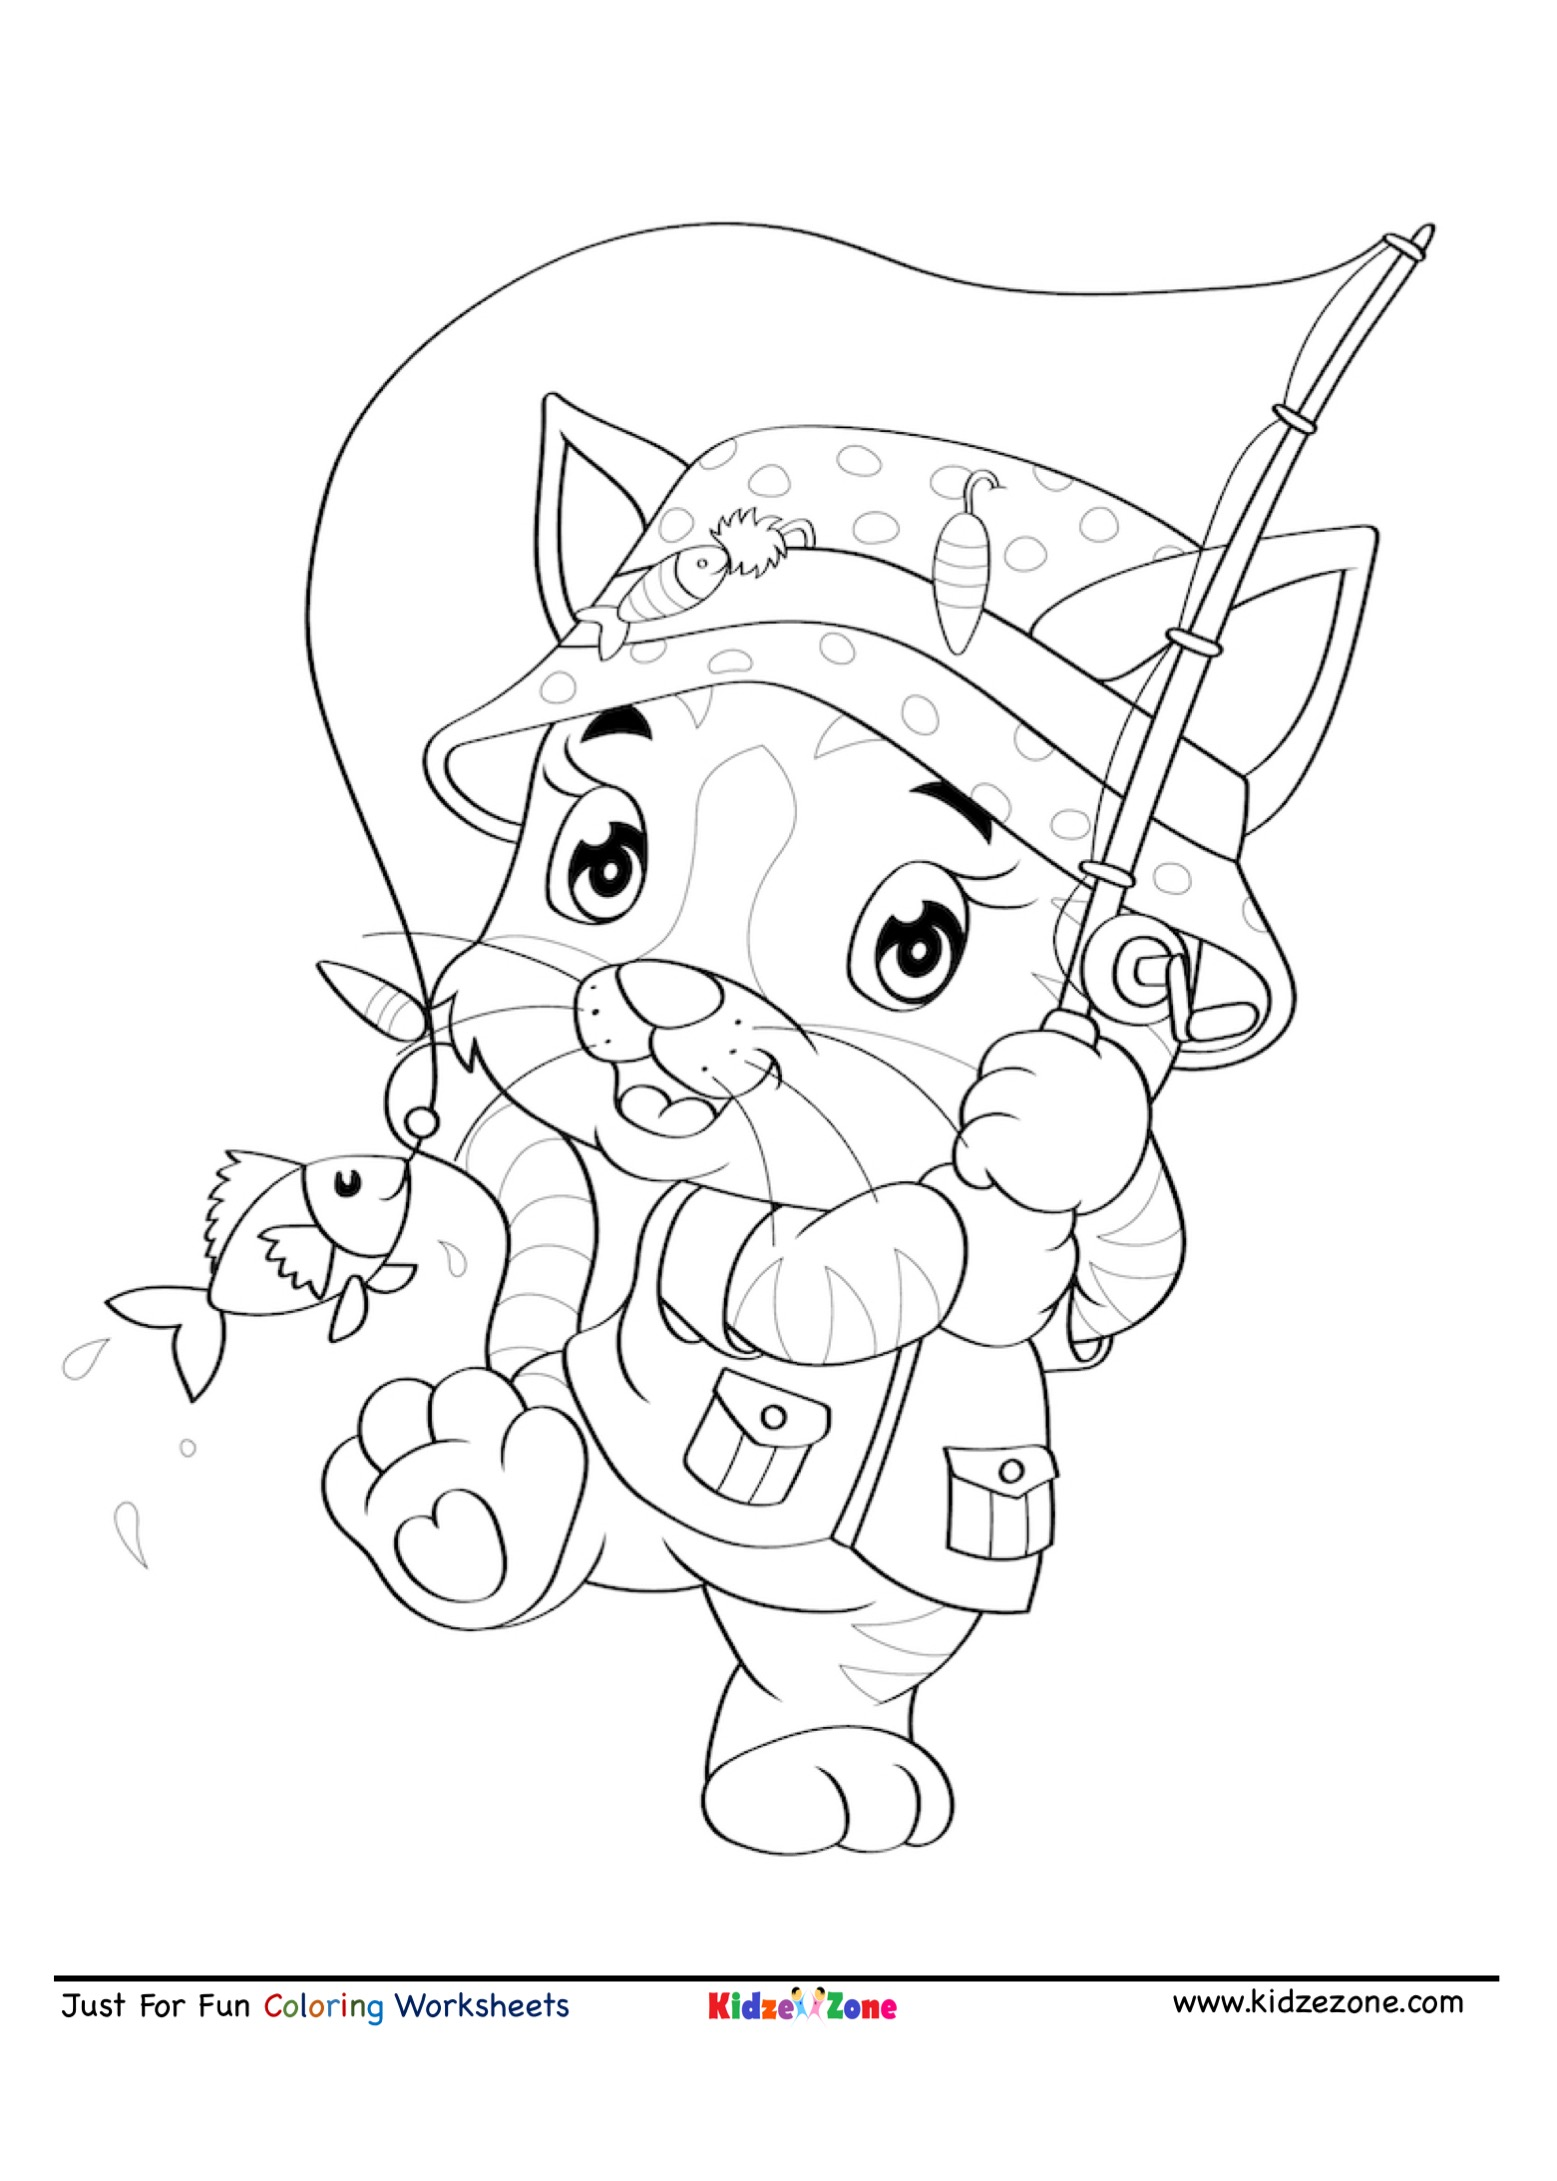 Tiger Gone Fishing Cartoon Coloring Page